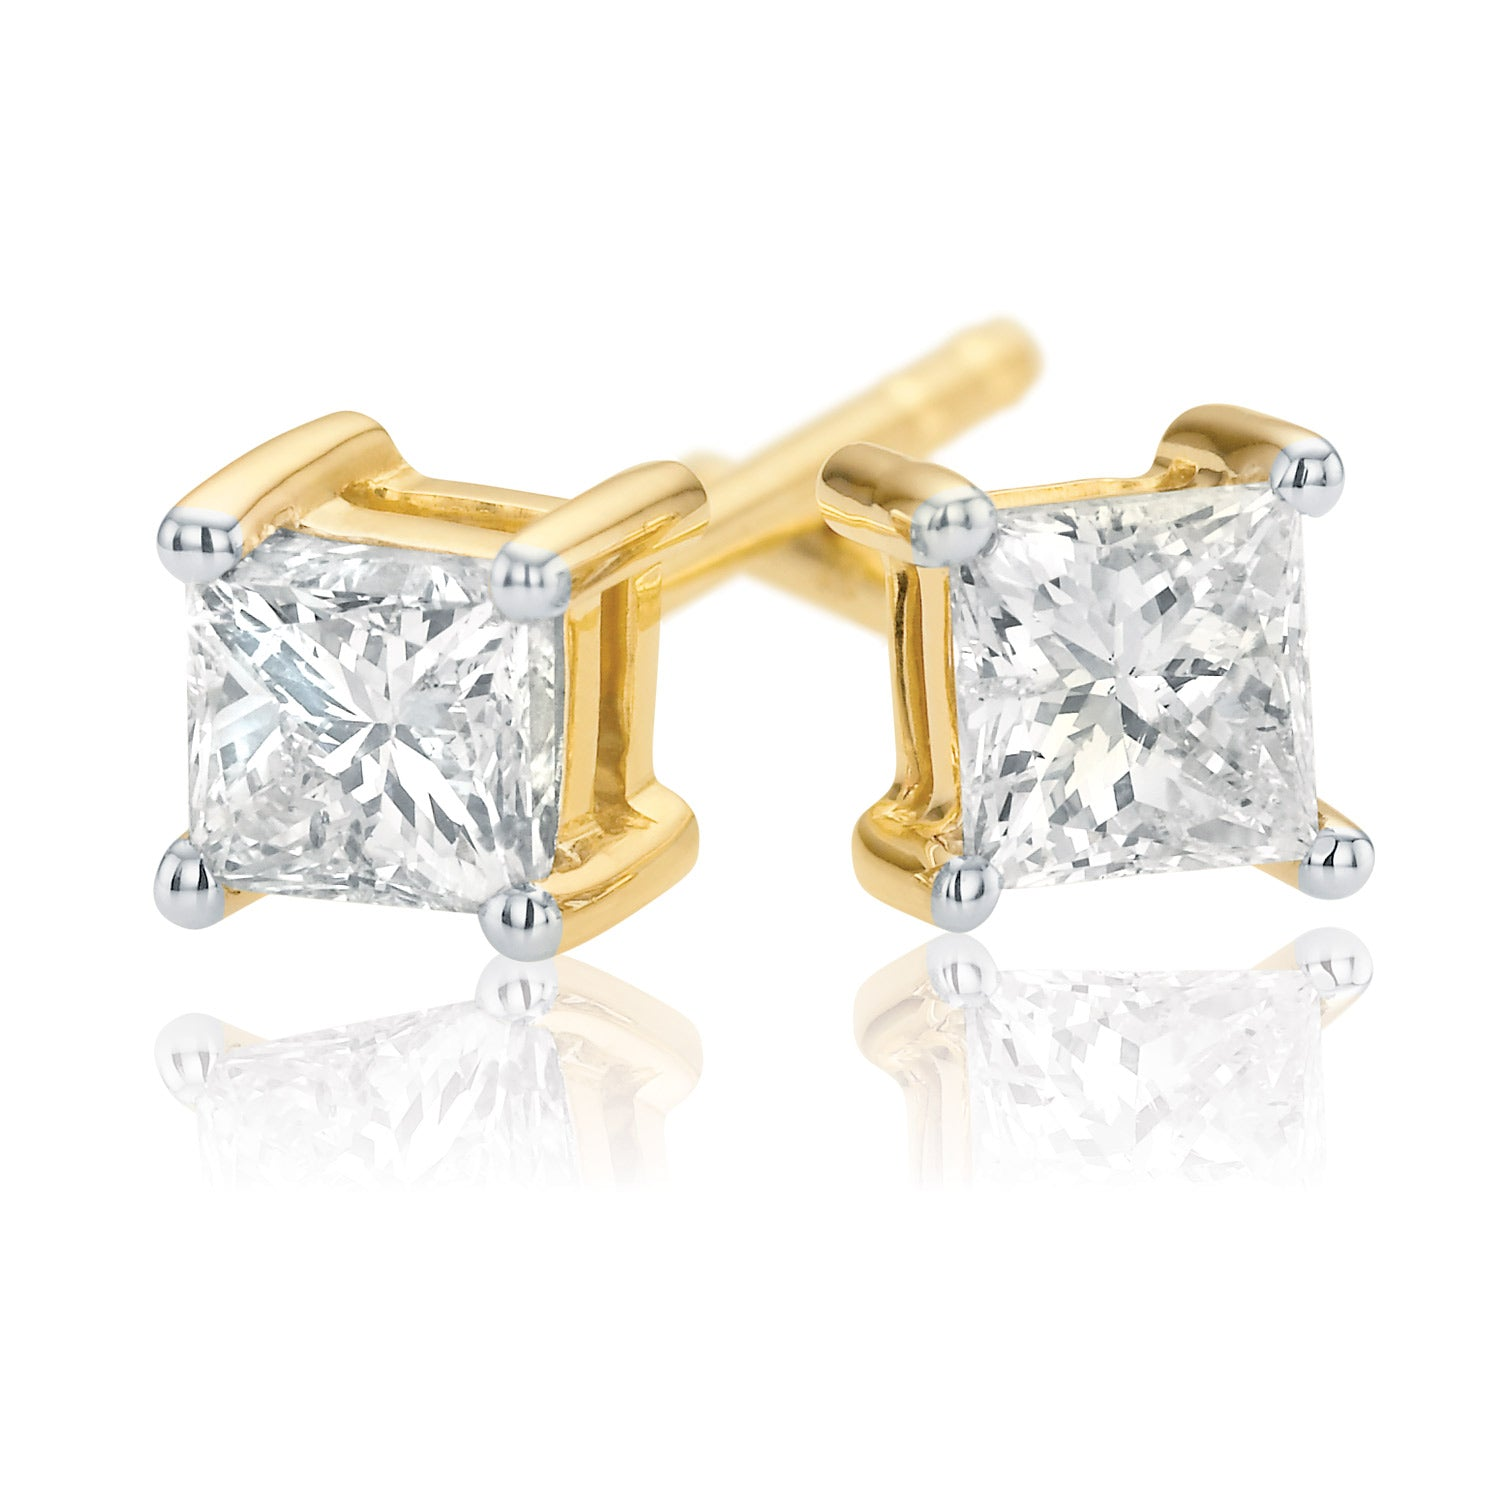 Promise 18ct Yellow Gold with 1/2 CARAT tw of Diamonds